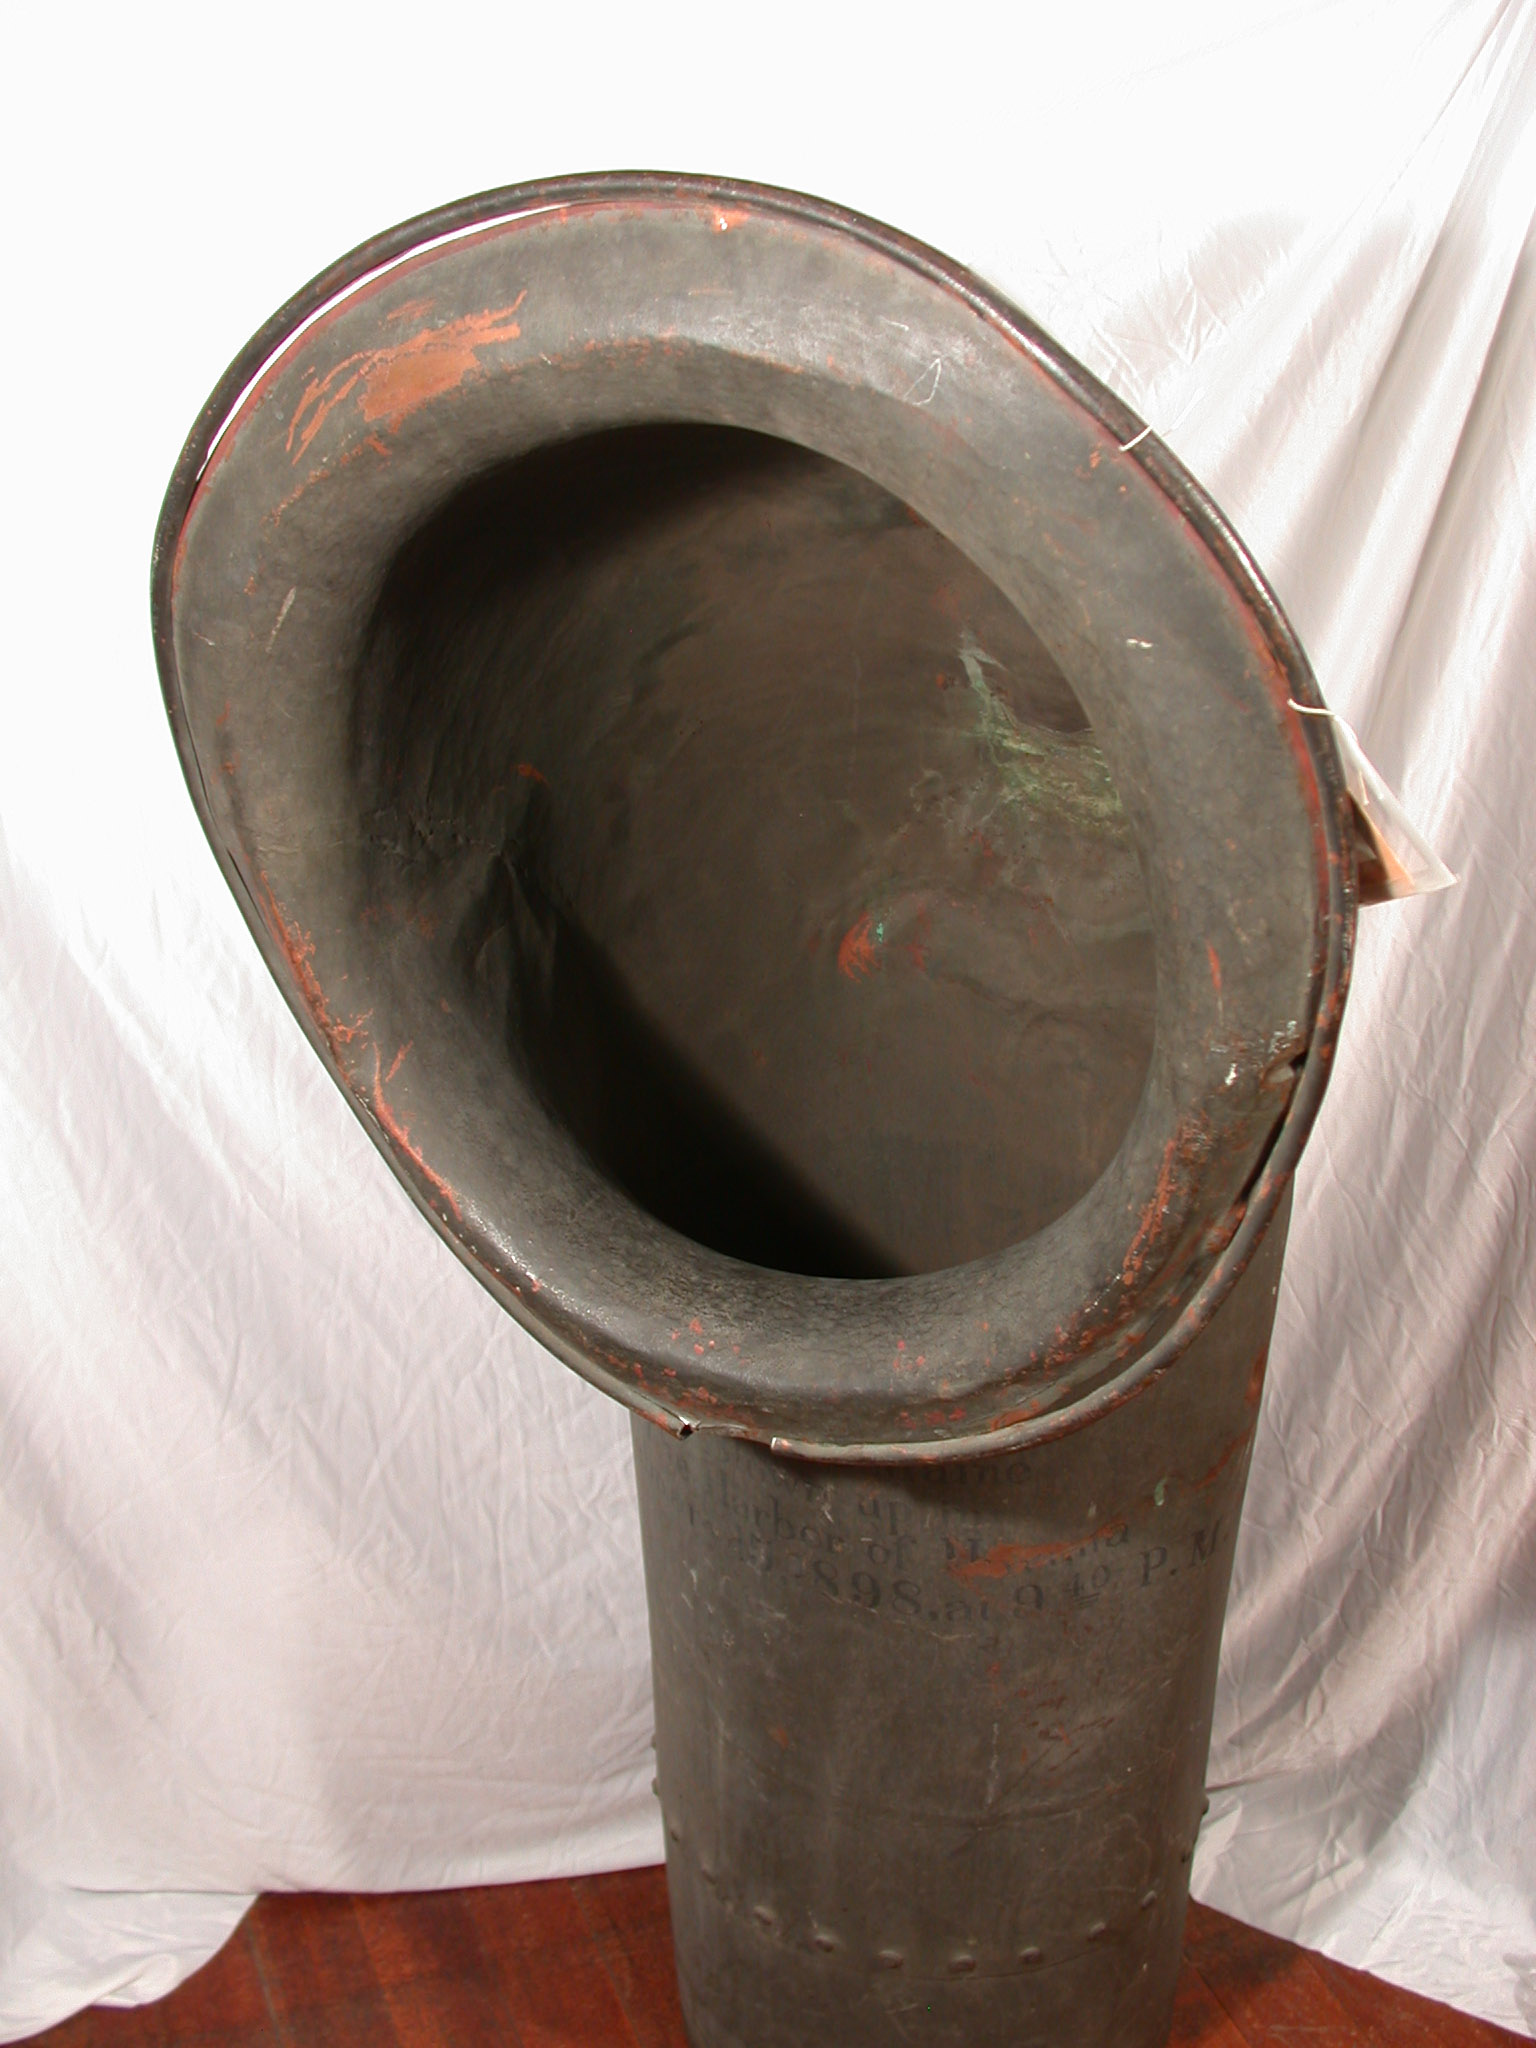 Ventilation cowl from U.S.S. Maine